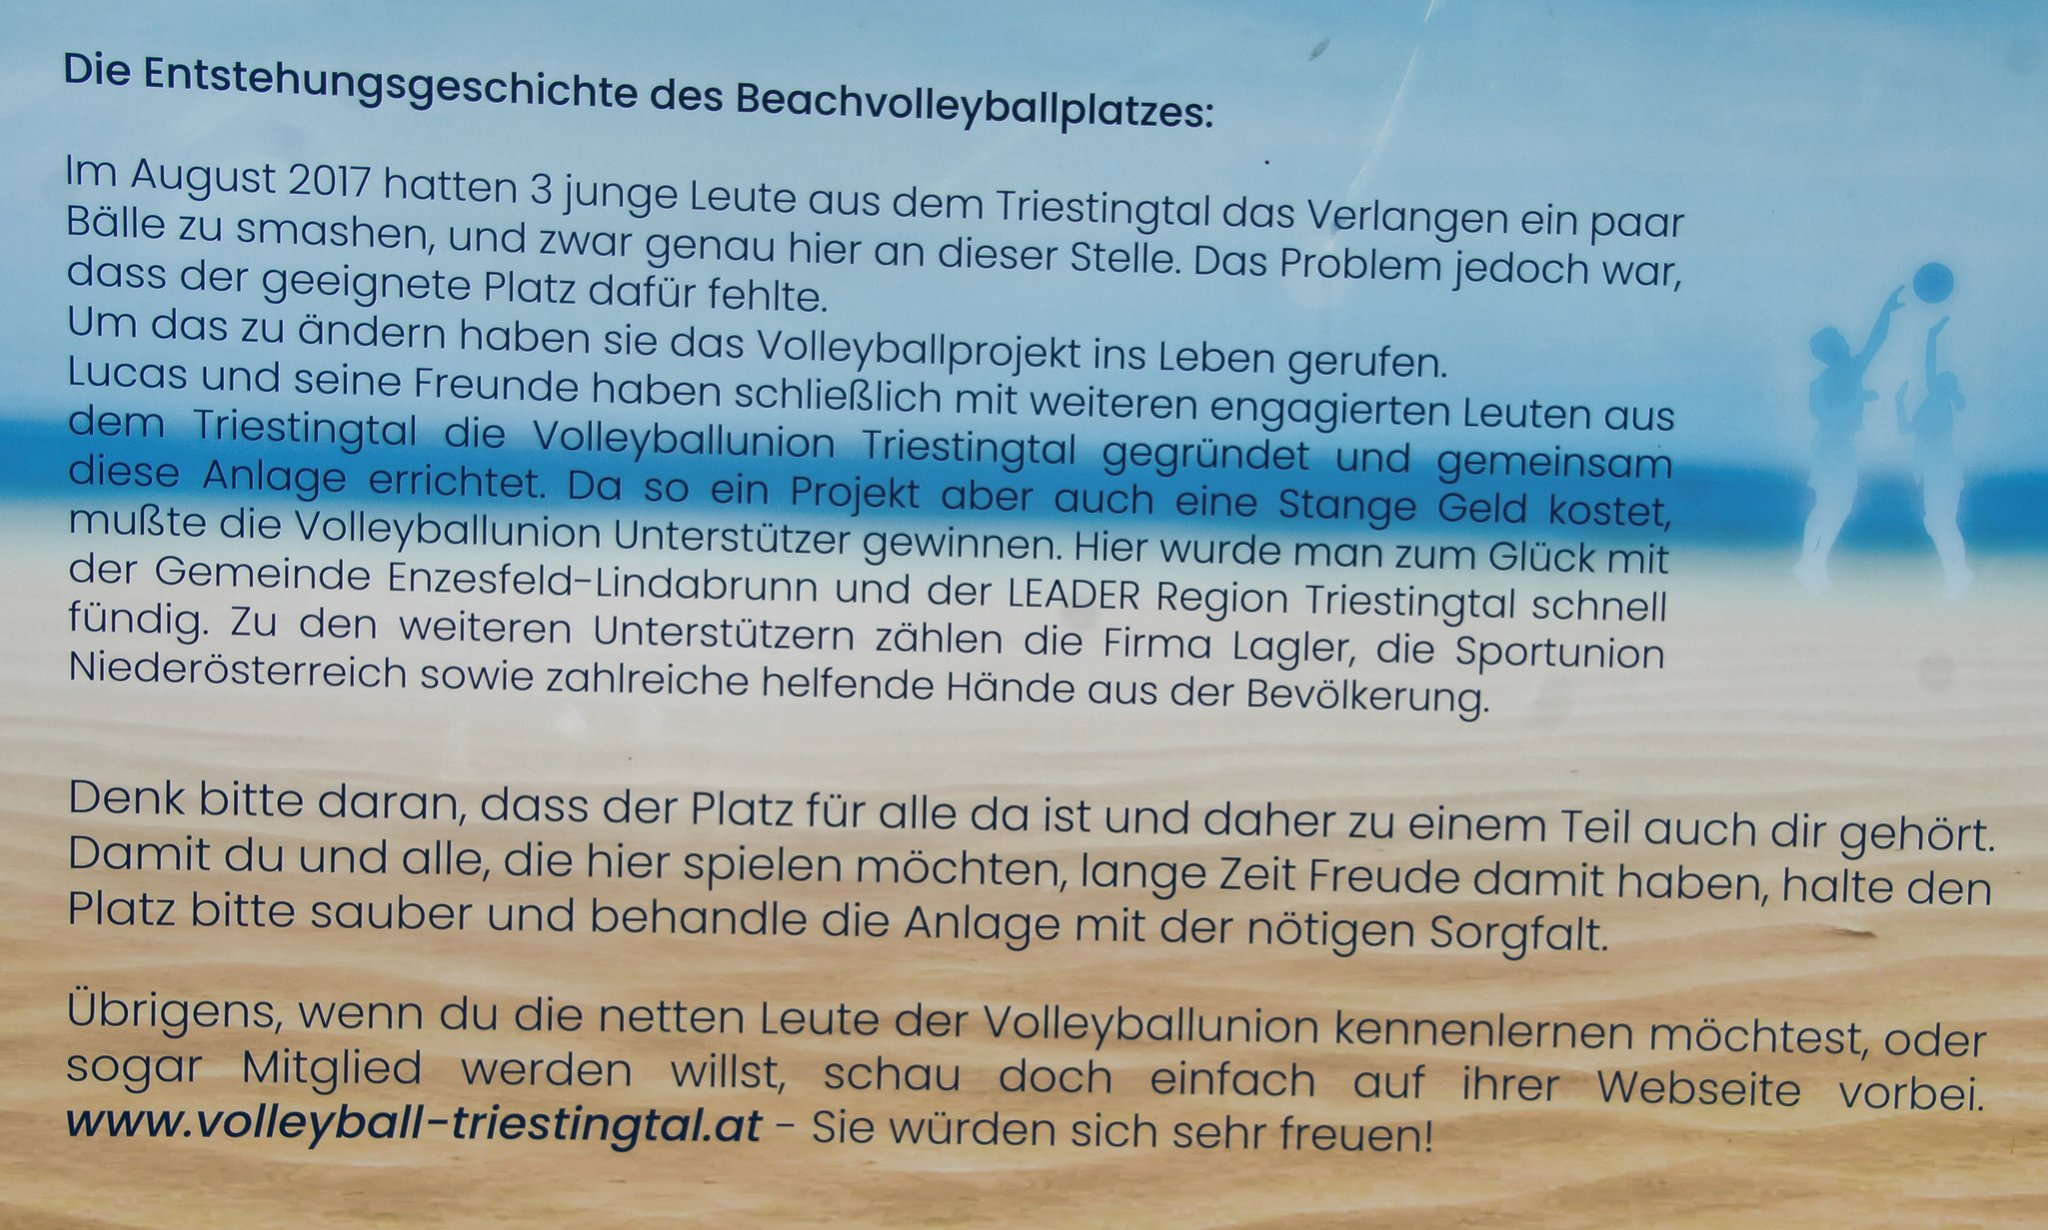 Professionelle partnervermittlung in orth an der donau, Sex